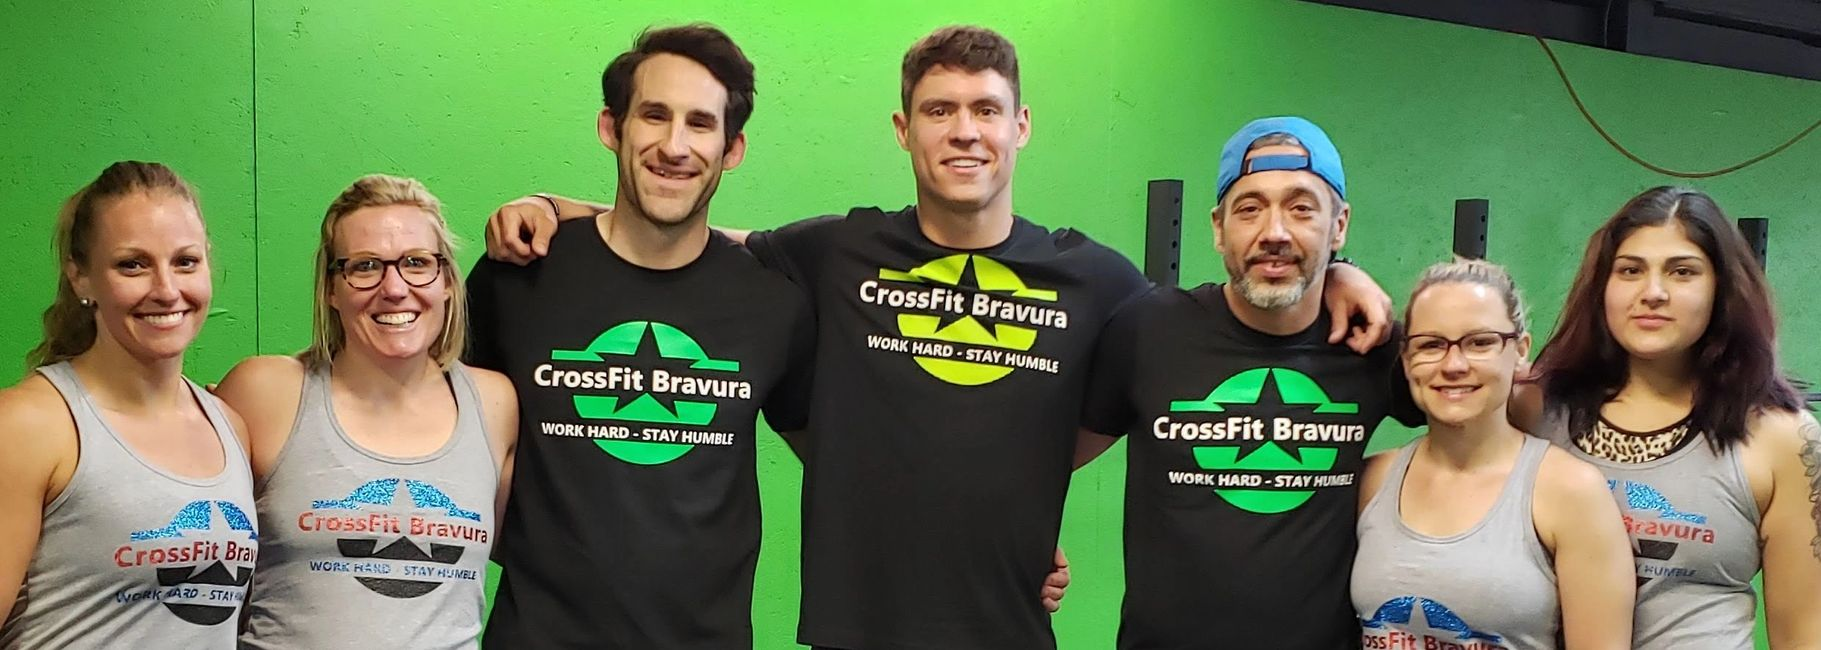 CrossFit Bravura fitness community at our Elkhart, IN gym.